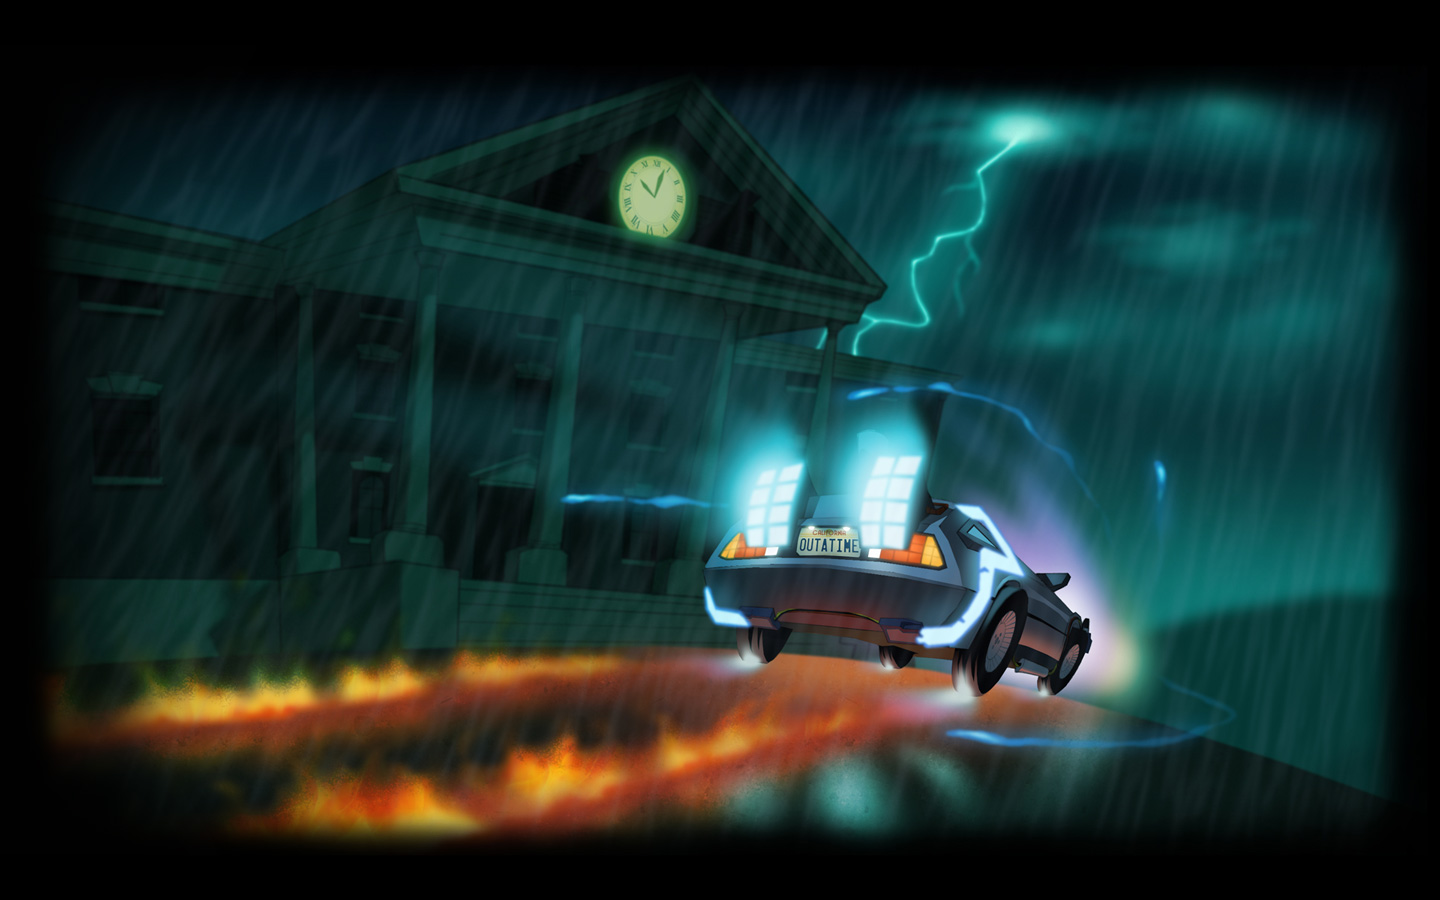 Free Back to the Future: The Game Wallpaper in 1440x900